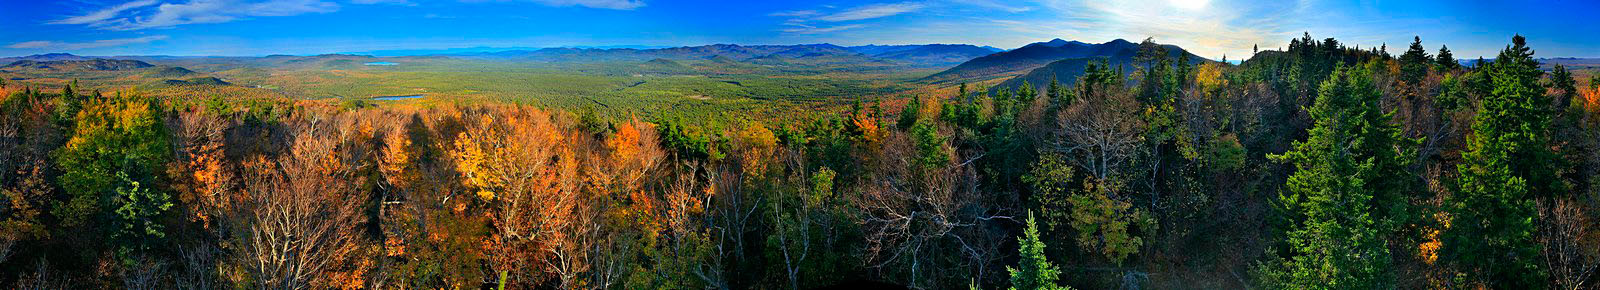 Wilmington Range,treetop,360,degree,panorama,Whiteface,Mt,Wilmington,town,Adirondacks, photo